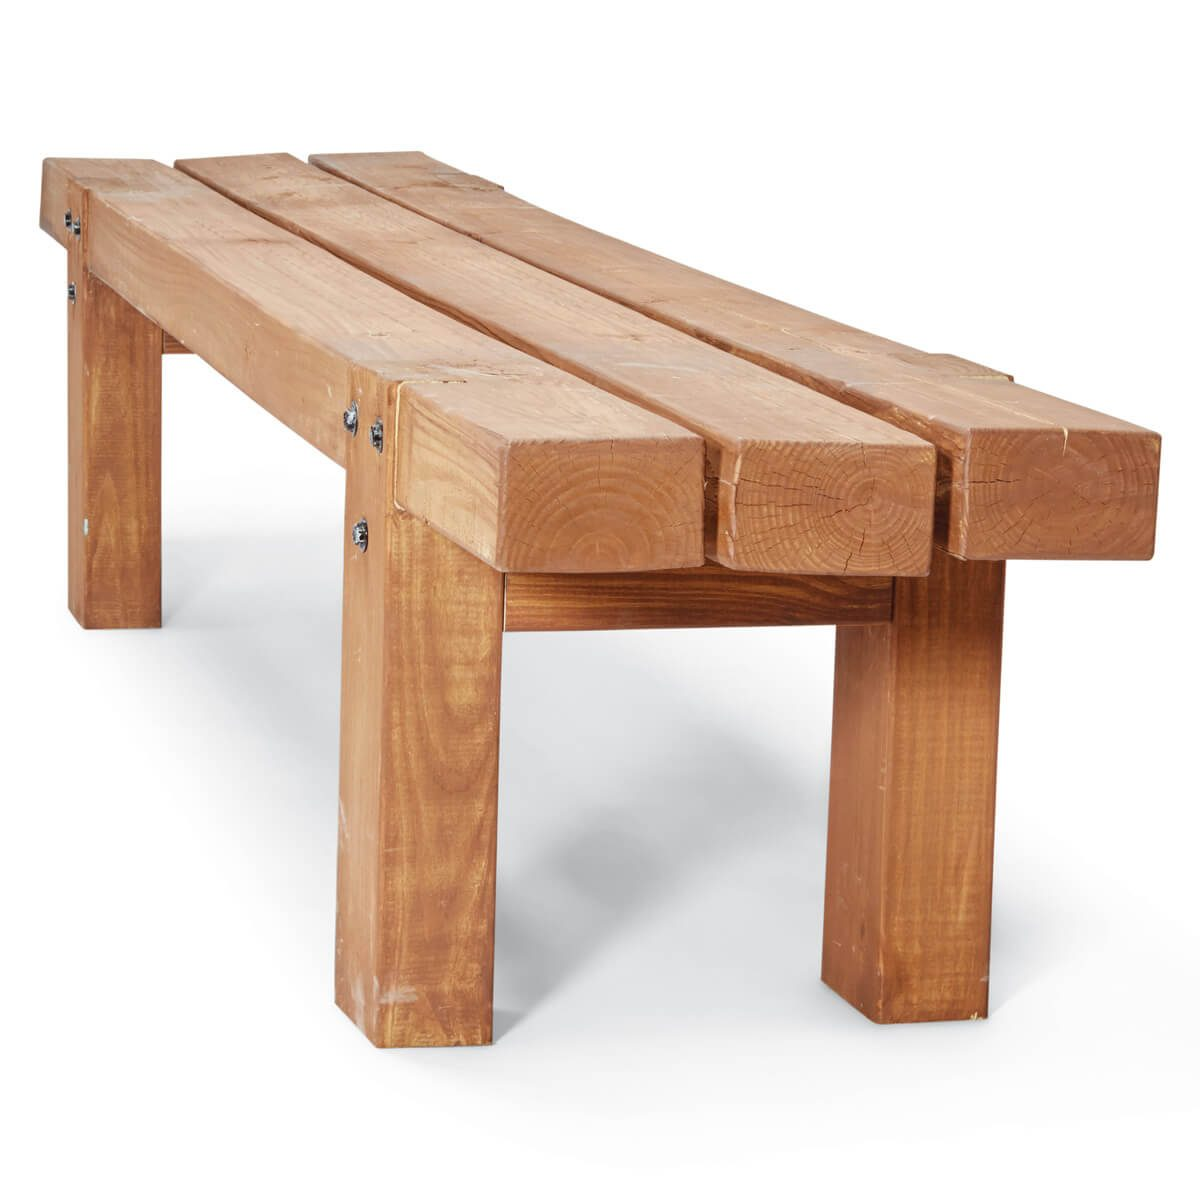 Remarkable How To Make Simple Timber Bench The Family Handyman Lamtechconsult Wood Chair Design Ideas Lamtechconsultcom